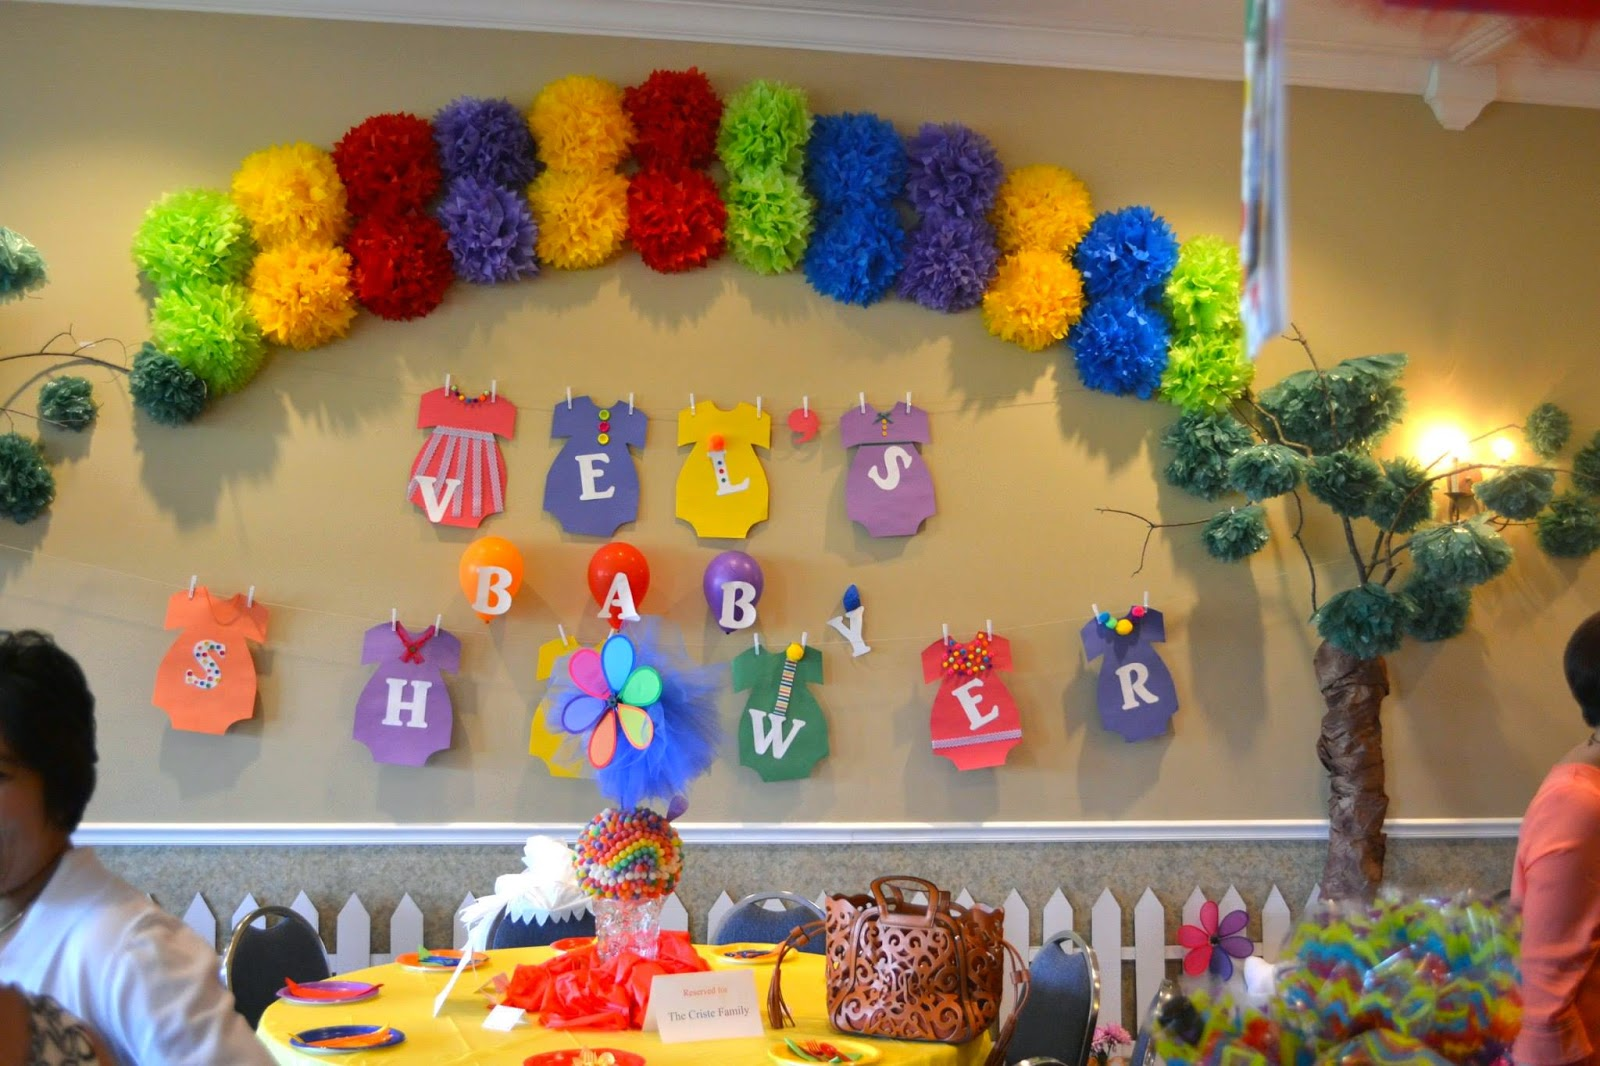 Life & Home at 2102: Our RAINBOW Baby Shower